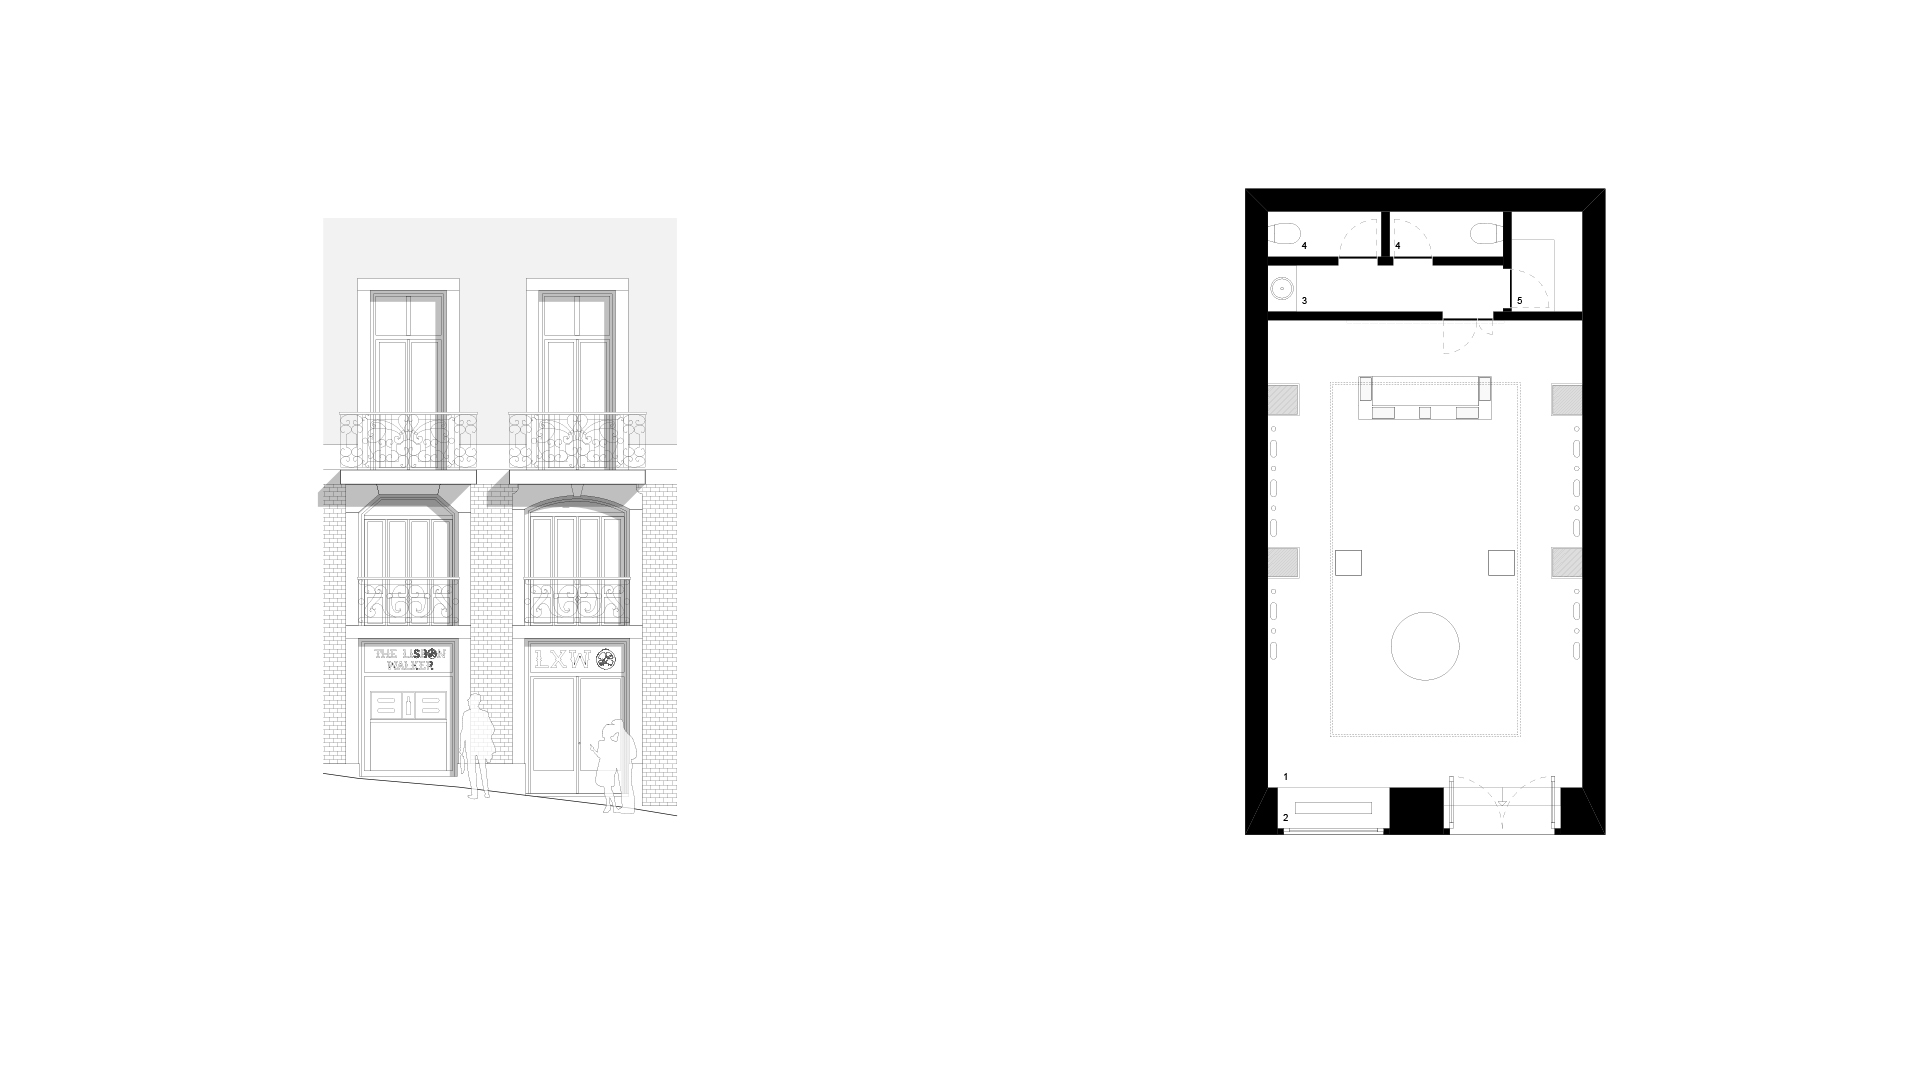 ELEVATION AND FLOOR PLAN _ 1 showroom . 2 store front . 3 hand rinse . 4 toilet . 5 storage